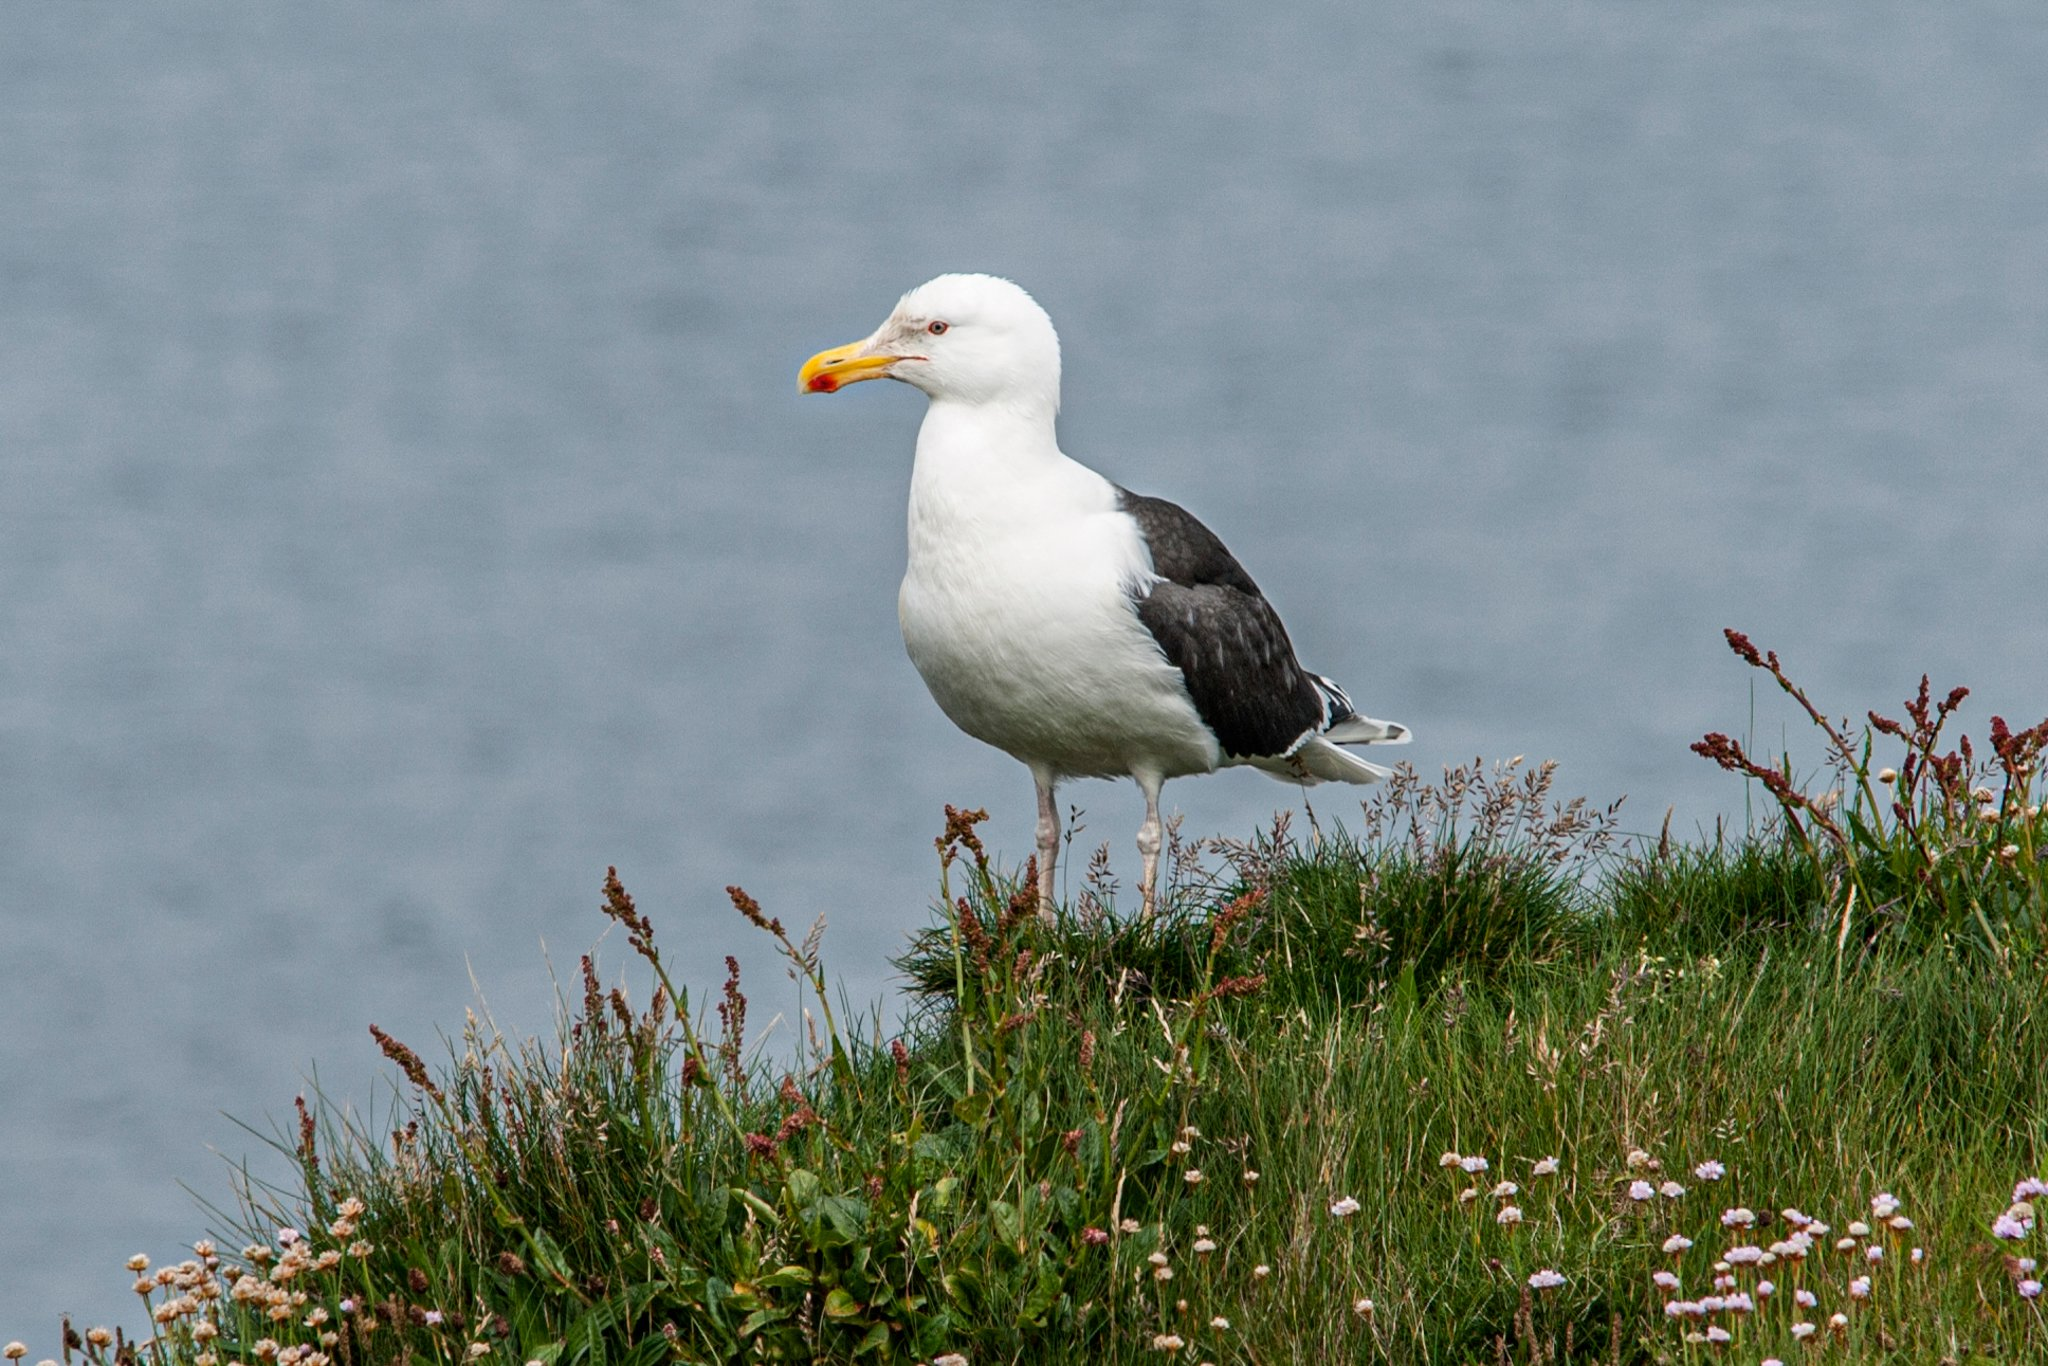 Havstrut/Greater Black-backed Gull